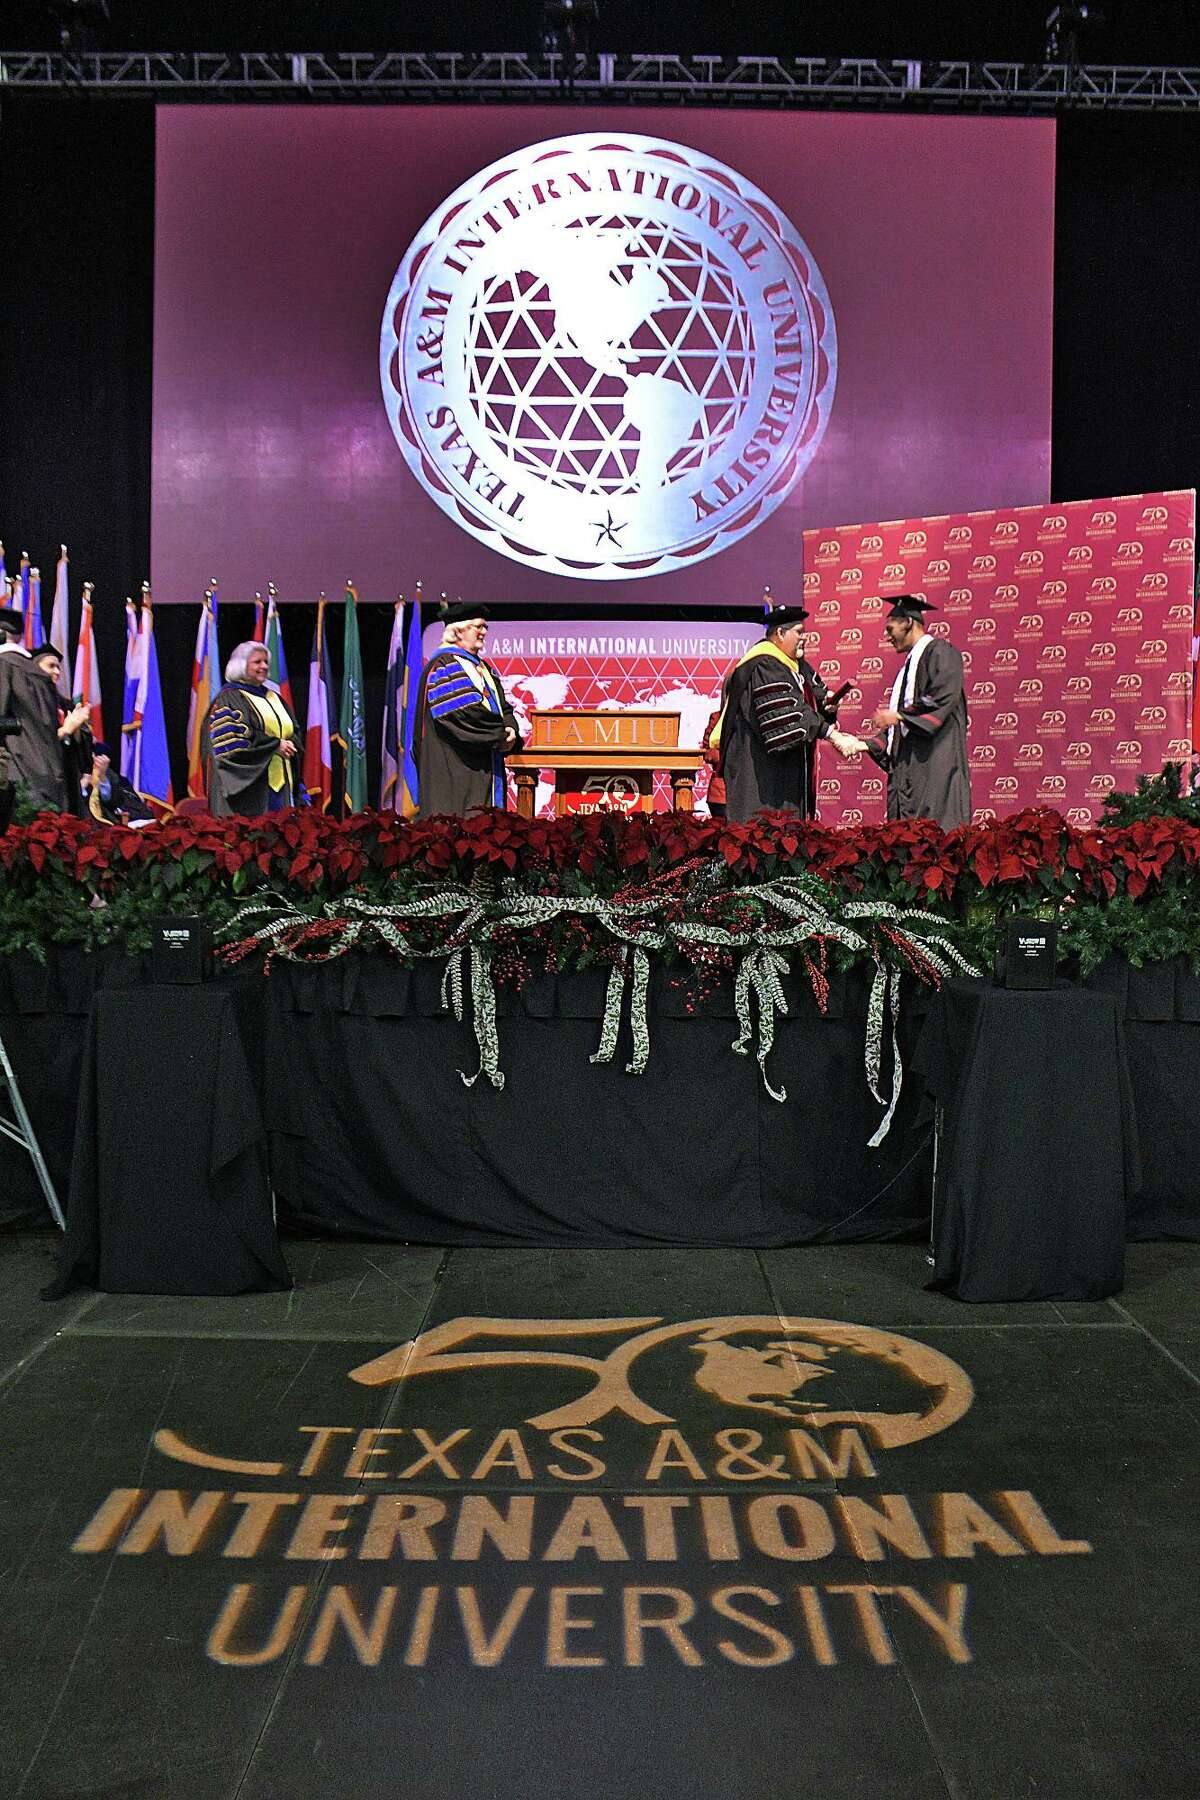 Over 800 candidates for graduation from Texas A&M International University participate in the Summer and Fall 2019 Commencement Exercises at Sames Auto Arena on Dec. 12, 2019. Commencement Speaker for the Fall Exercises was State Senator Judith Zaffirini (D-Laredo), left.